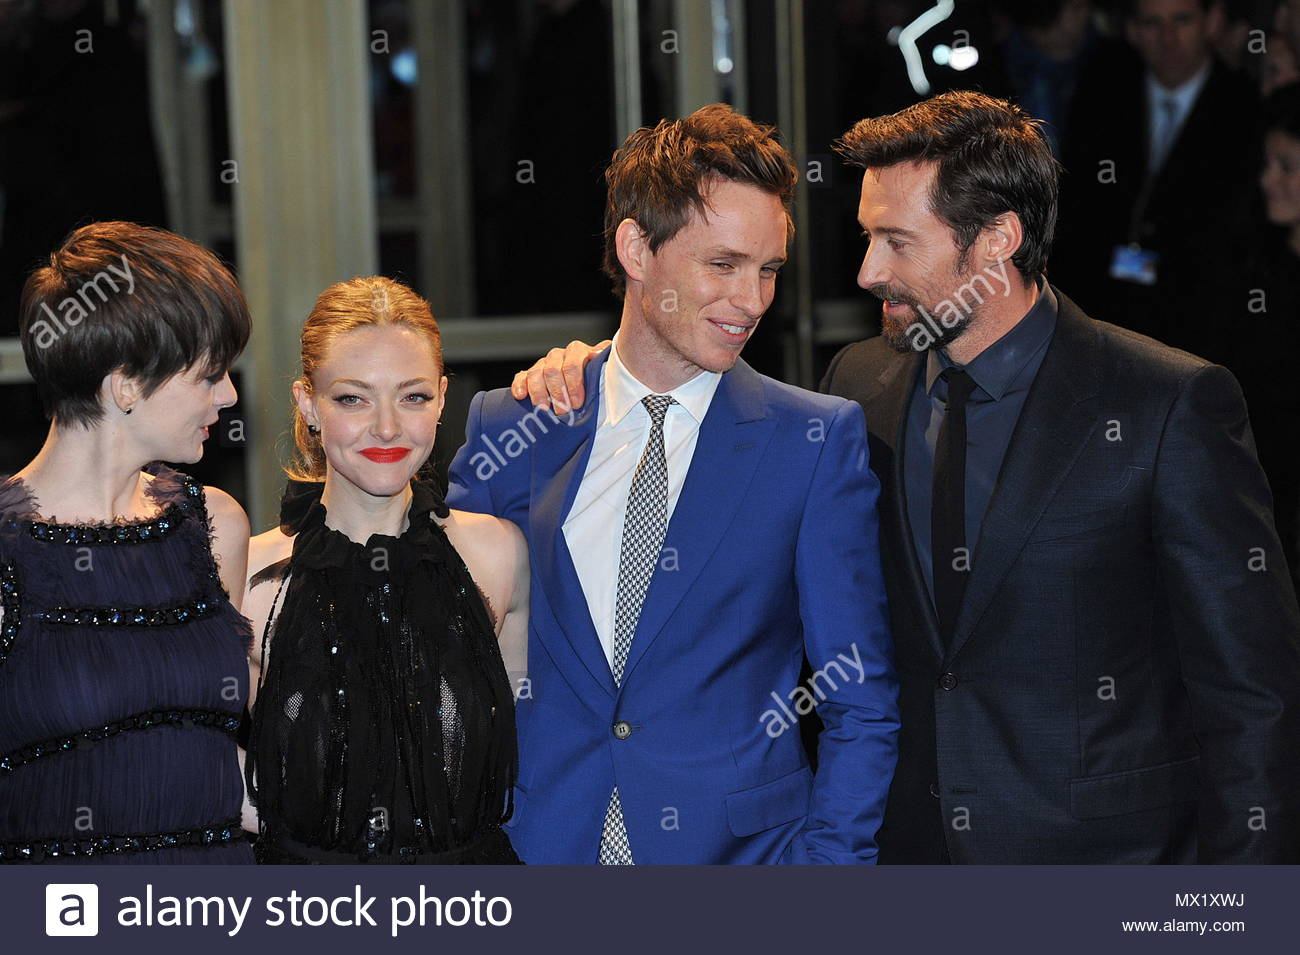 """Anne Hathaway,Amanda Seyfried,Eddie Redmayne,Hugh Jackman. Cast of Les  Miserables poses on the red carpet for """"Les Miserables"""" Premiere during the  63Th ..."""